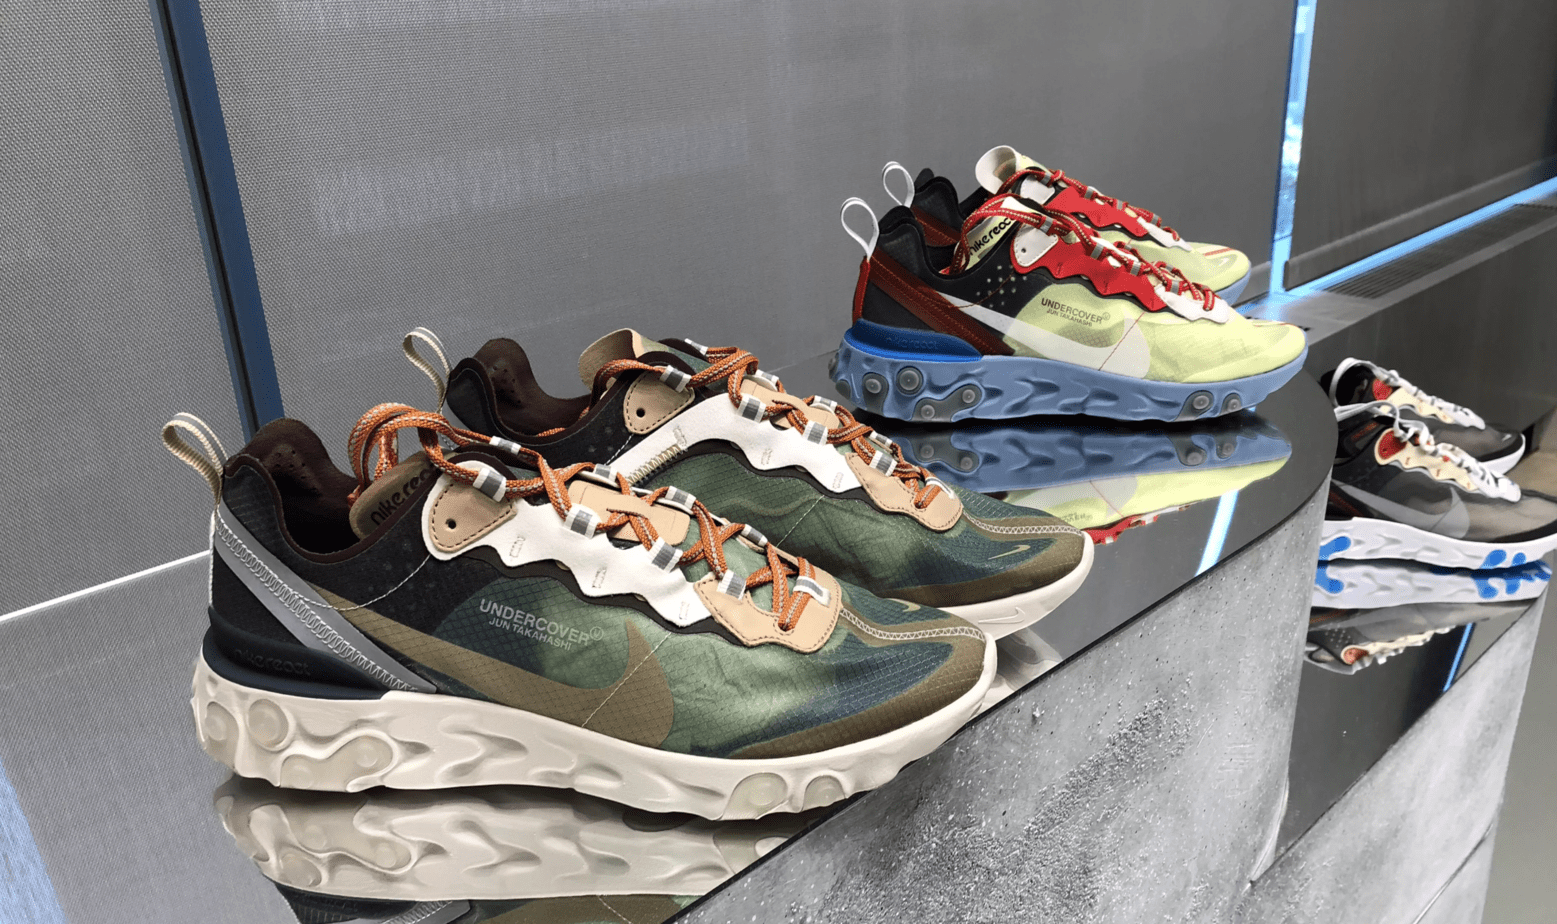 87f42f924f4c The Undercover x Nike Epic React Element 87 Will Release in at Least Five  Colorways